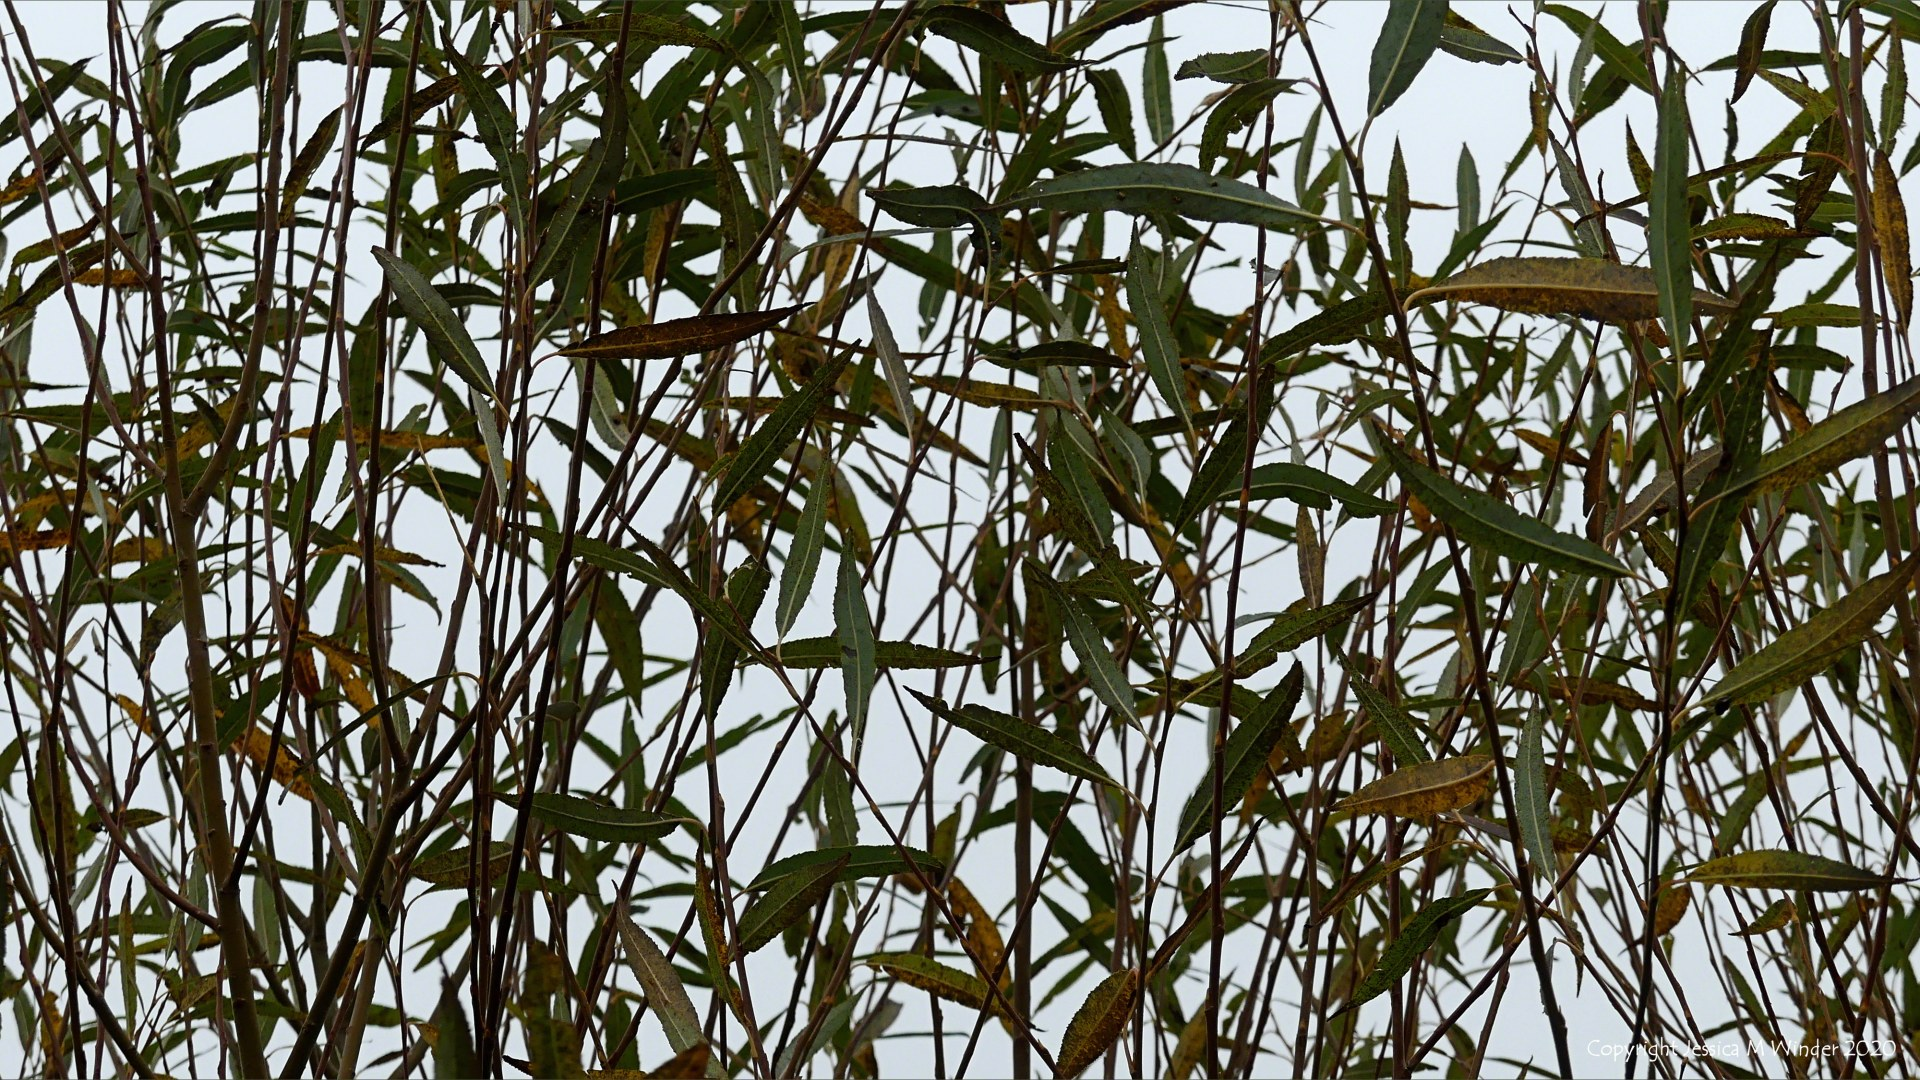 Willow leaves in autumn